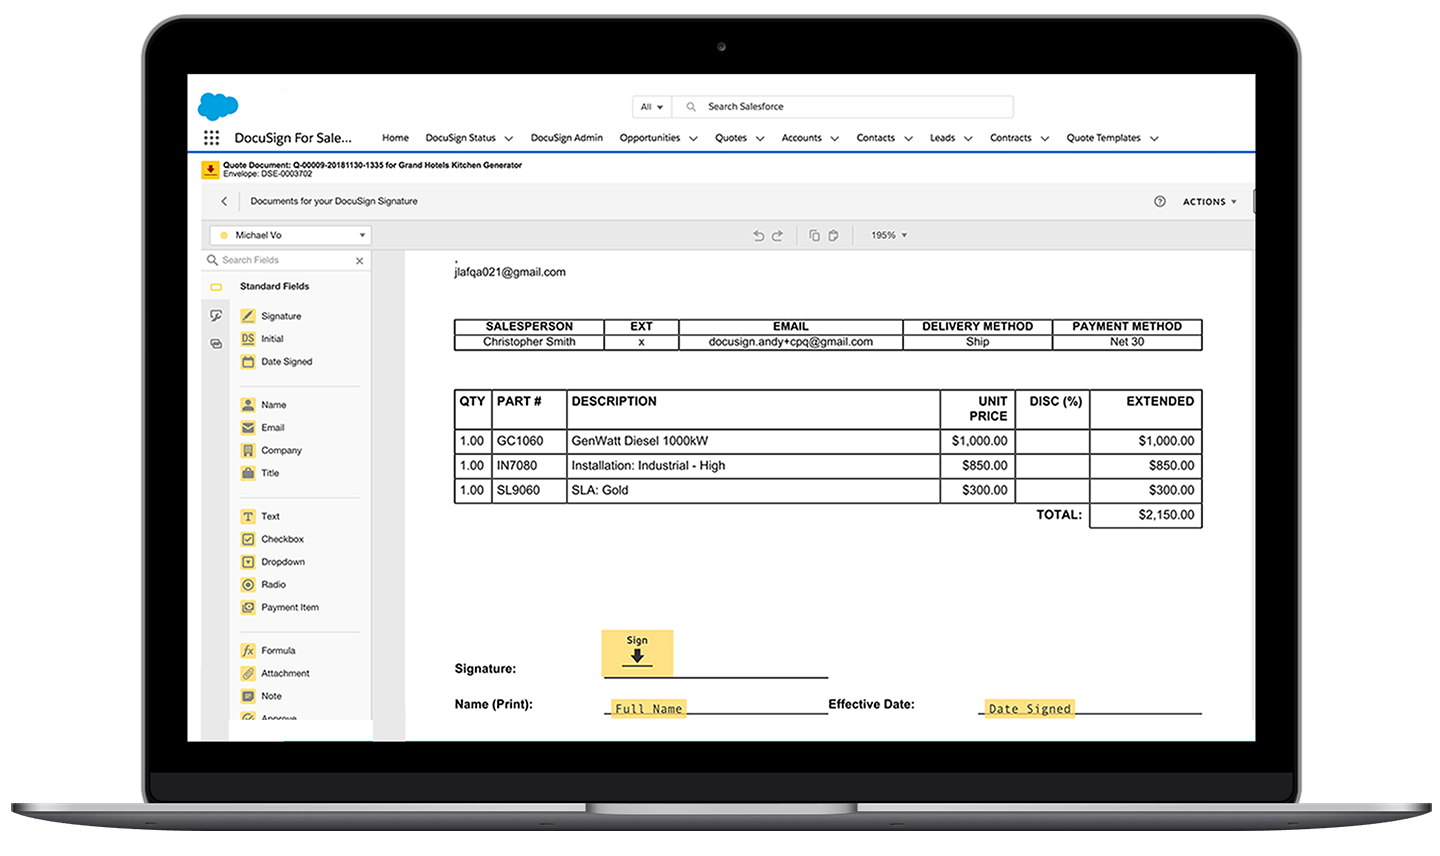 Een laptop met de Salesforce-interface en een DocuSign-documentmap die wordt bewerkt